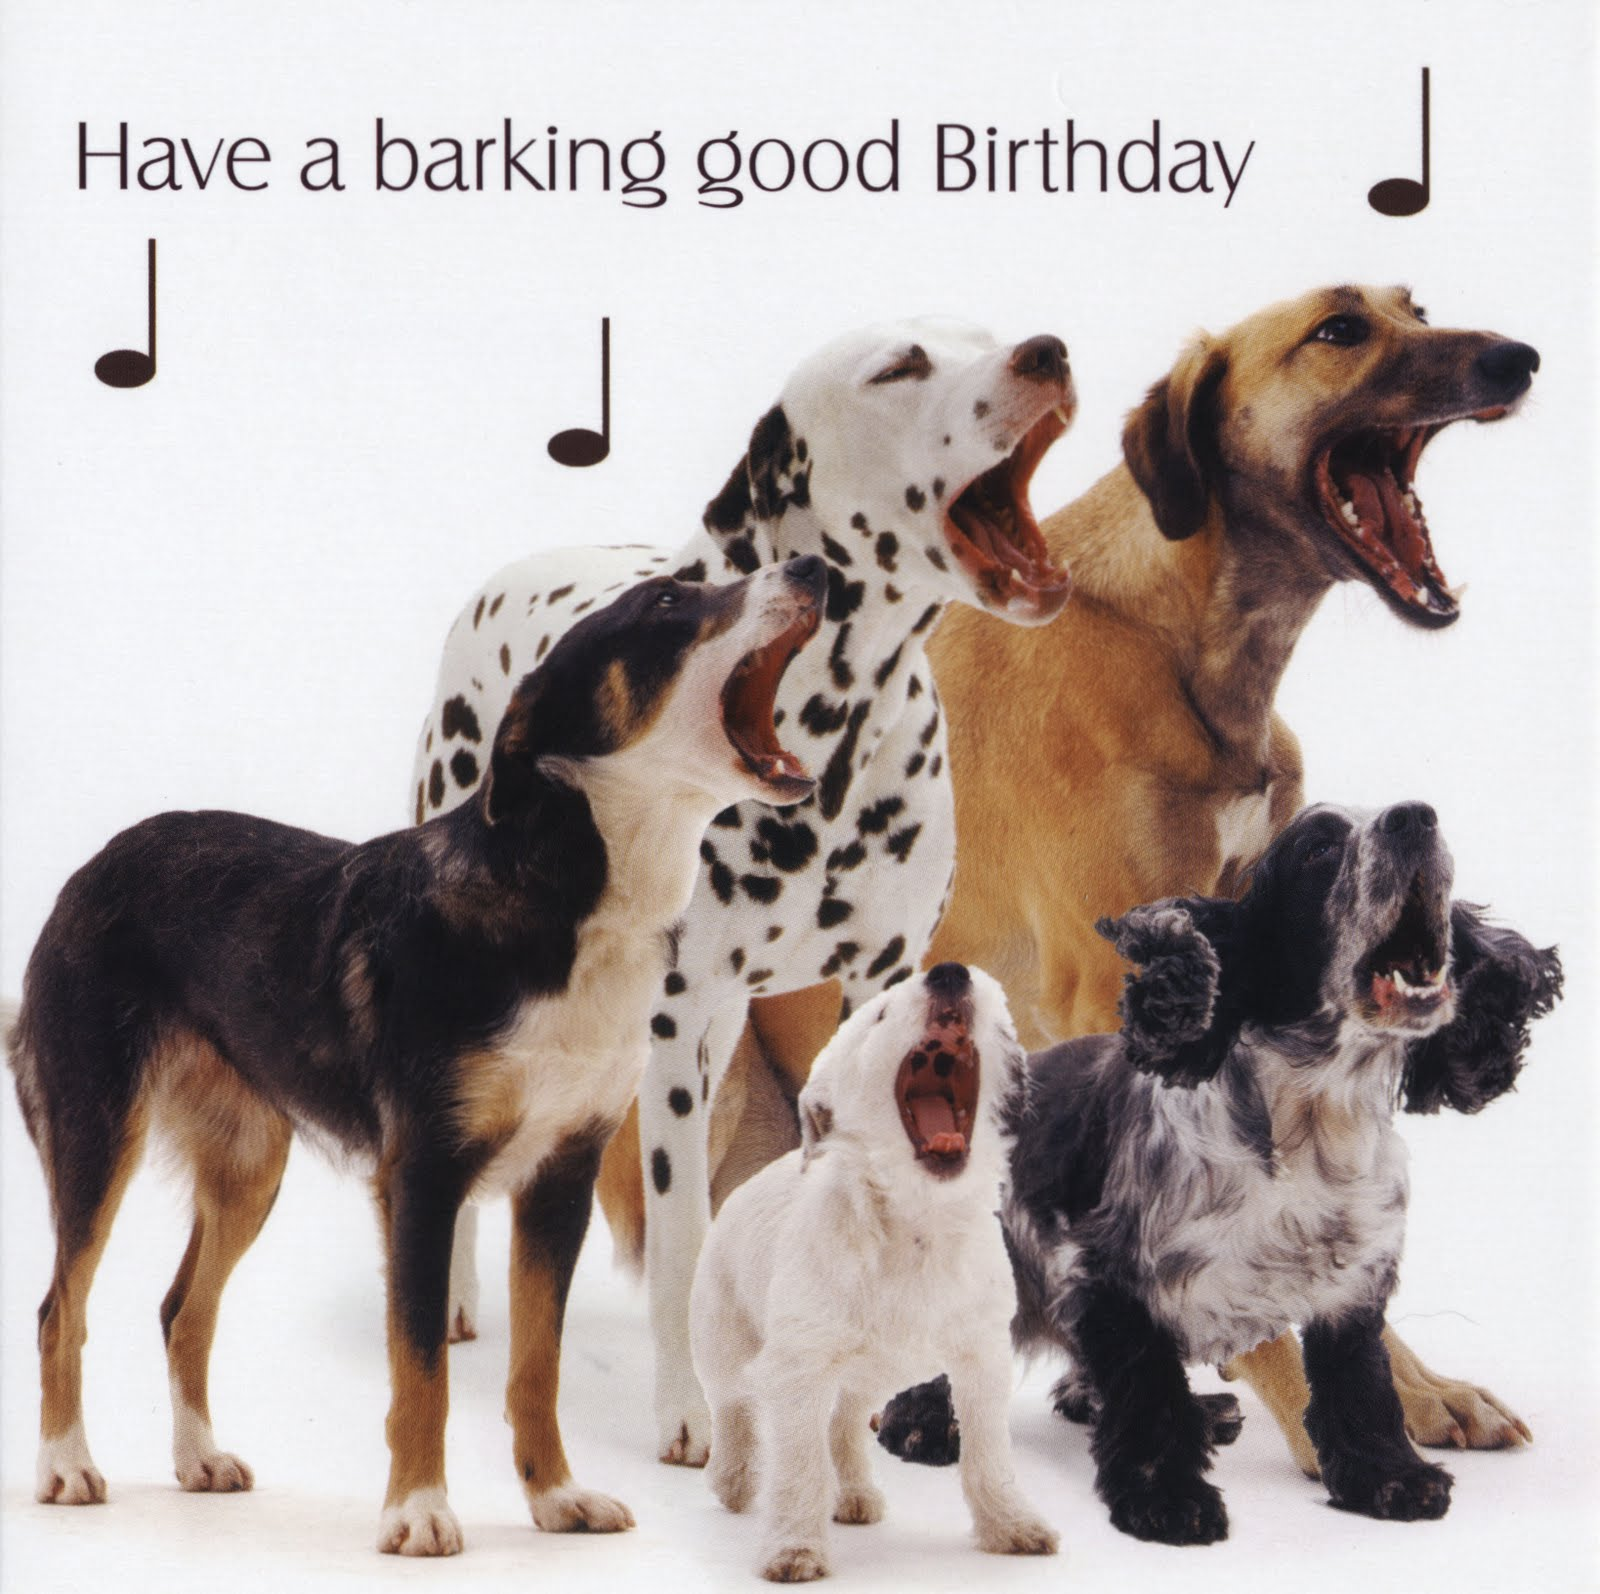 Birthday Ecards Dogs Singing ~ Birthday quotes from dogs quotesgram